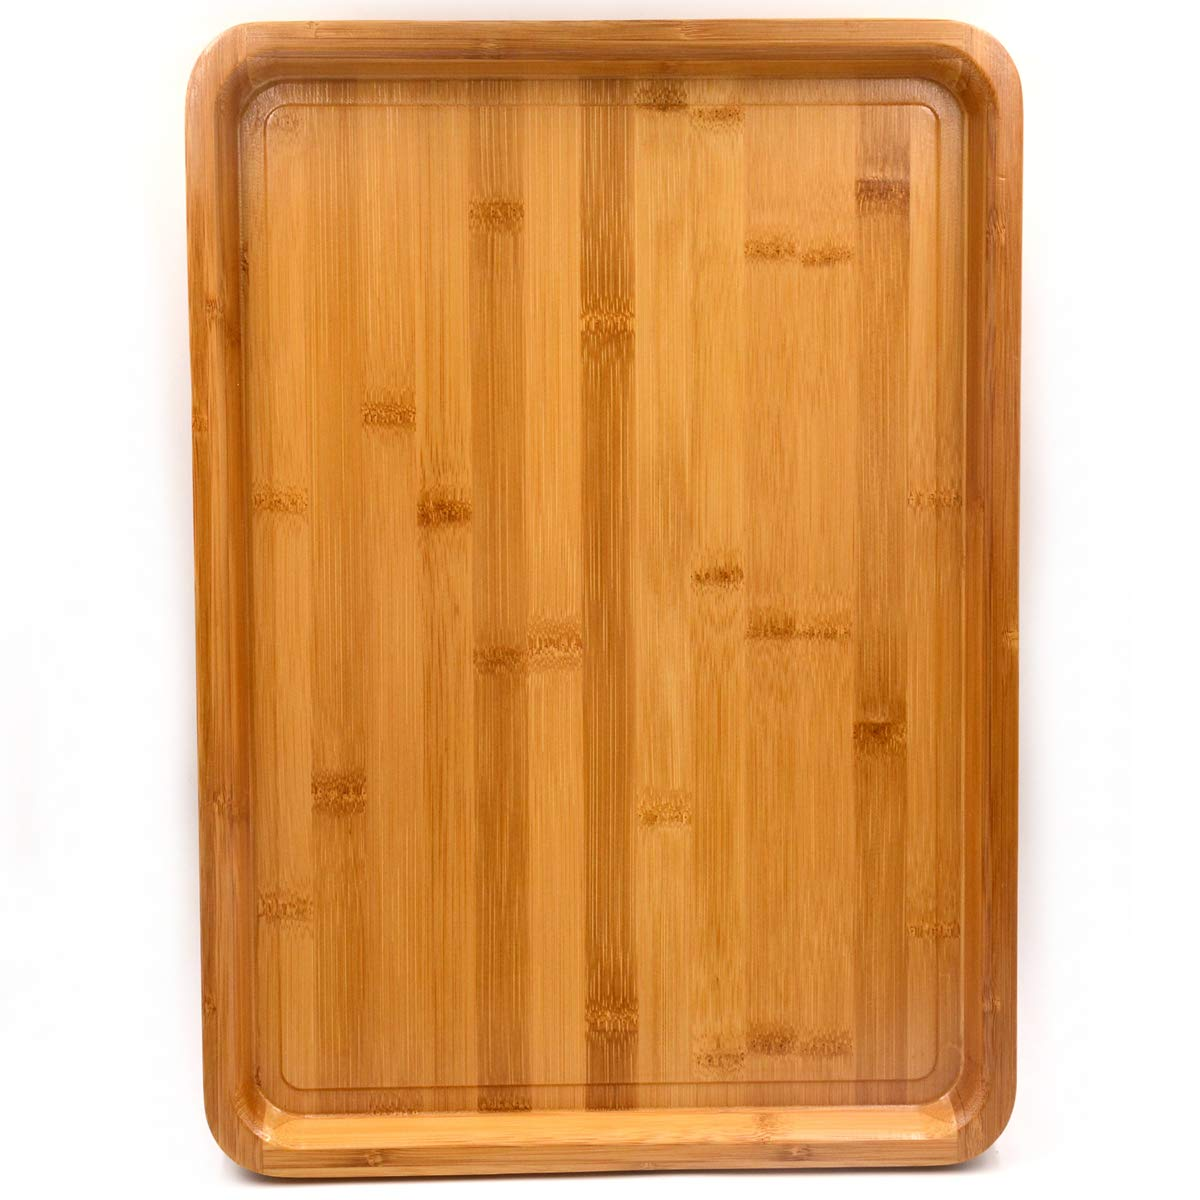 Bamber Large Size Bamboo Serving Tray, Oval, 15.5 x 11.8 x 0.8 Inches US-BTTBAM403002